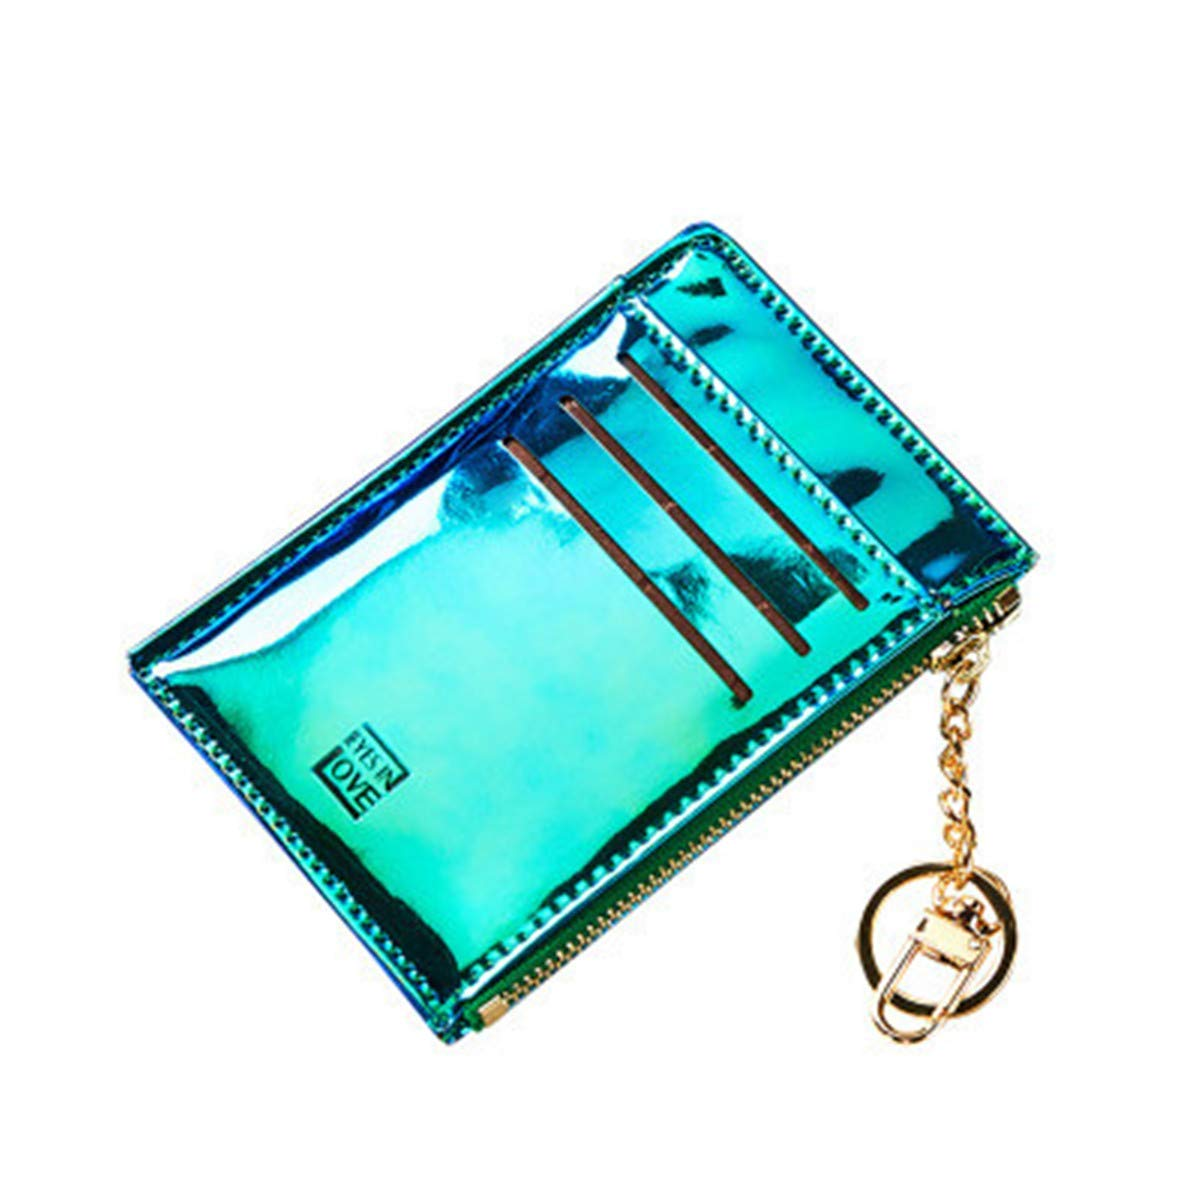 BeautyWJY Mini Credit Card Holder Coin Purse Key Chain Wallt With Key Ring Coin Change